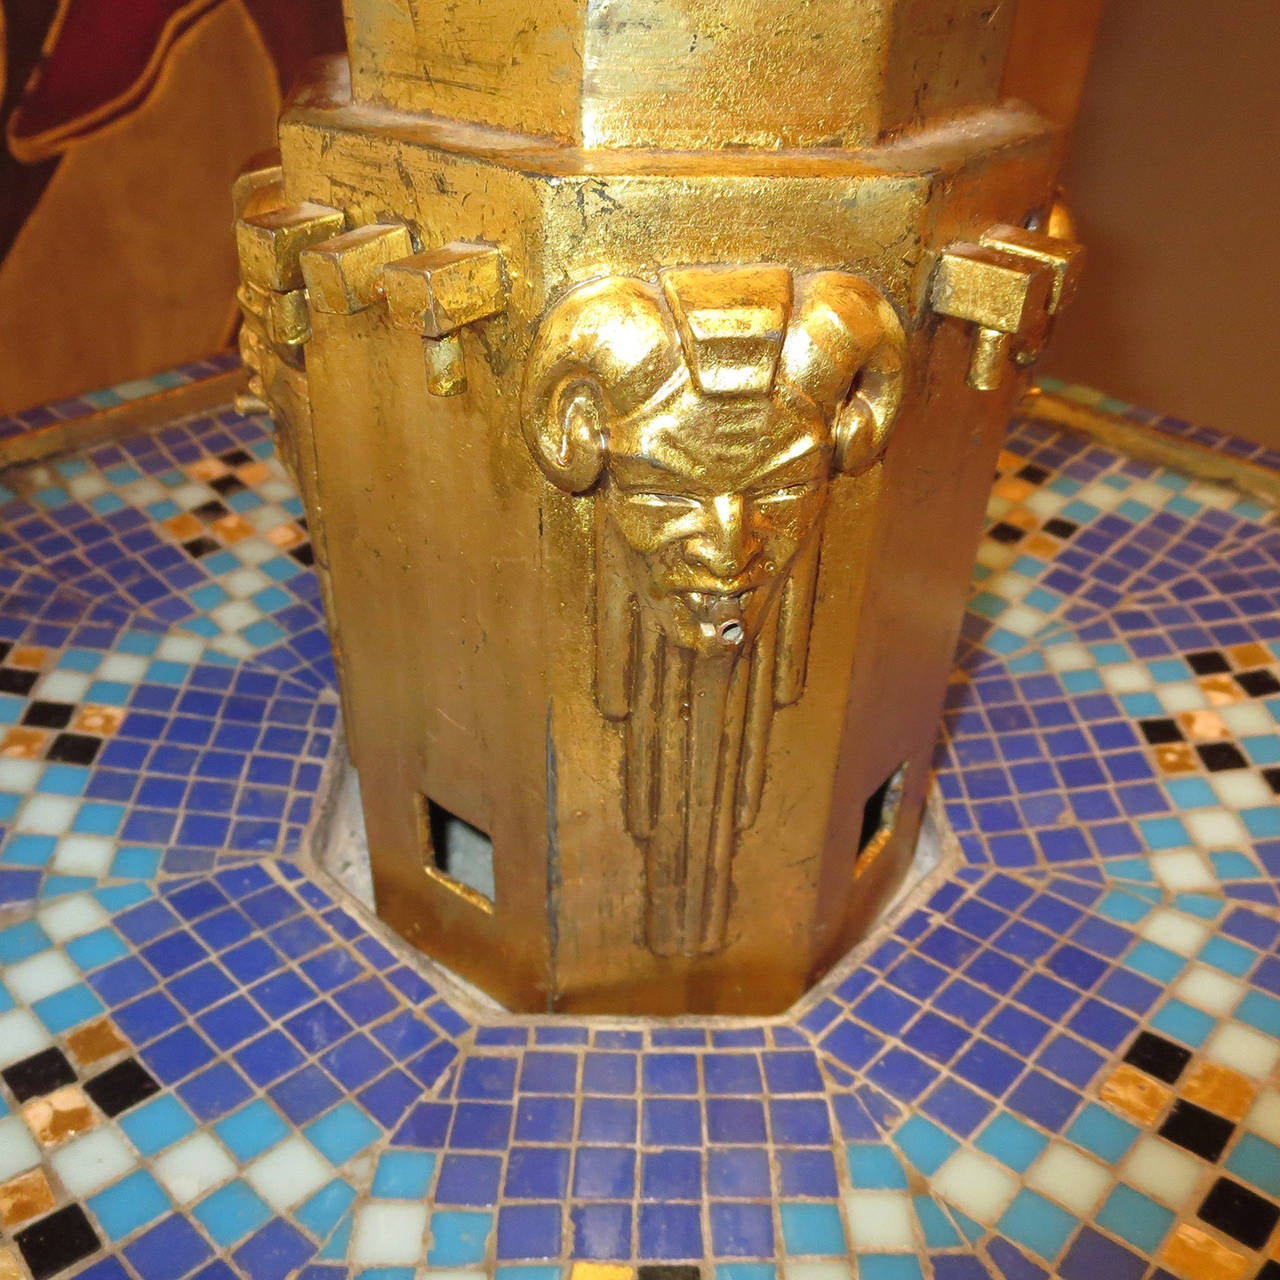 French Art Deco Home Fountain on Burl Wood Pedestal 3